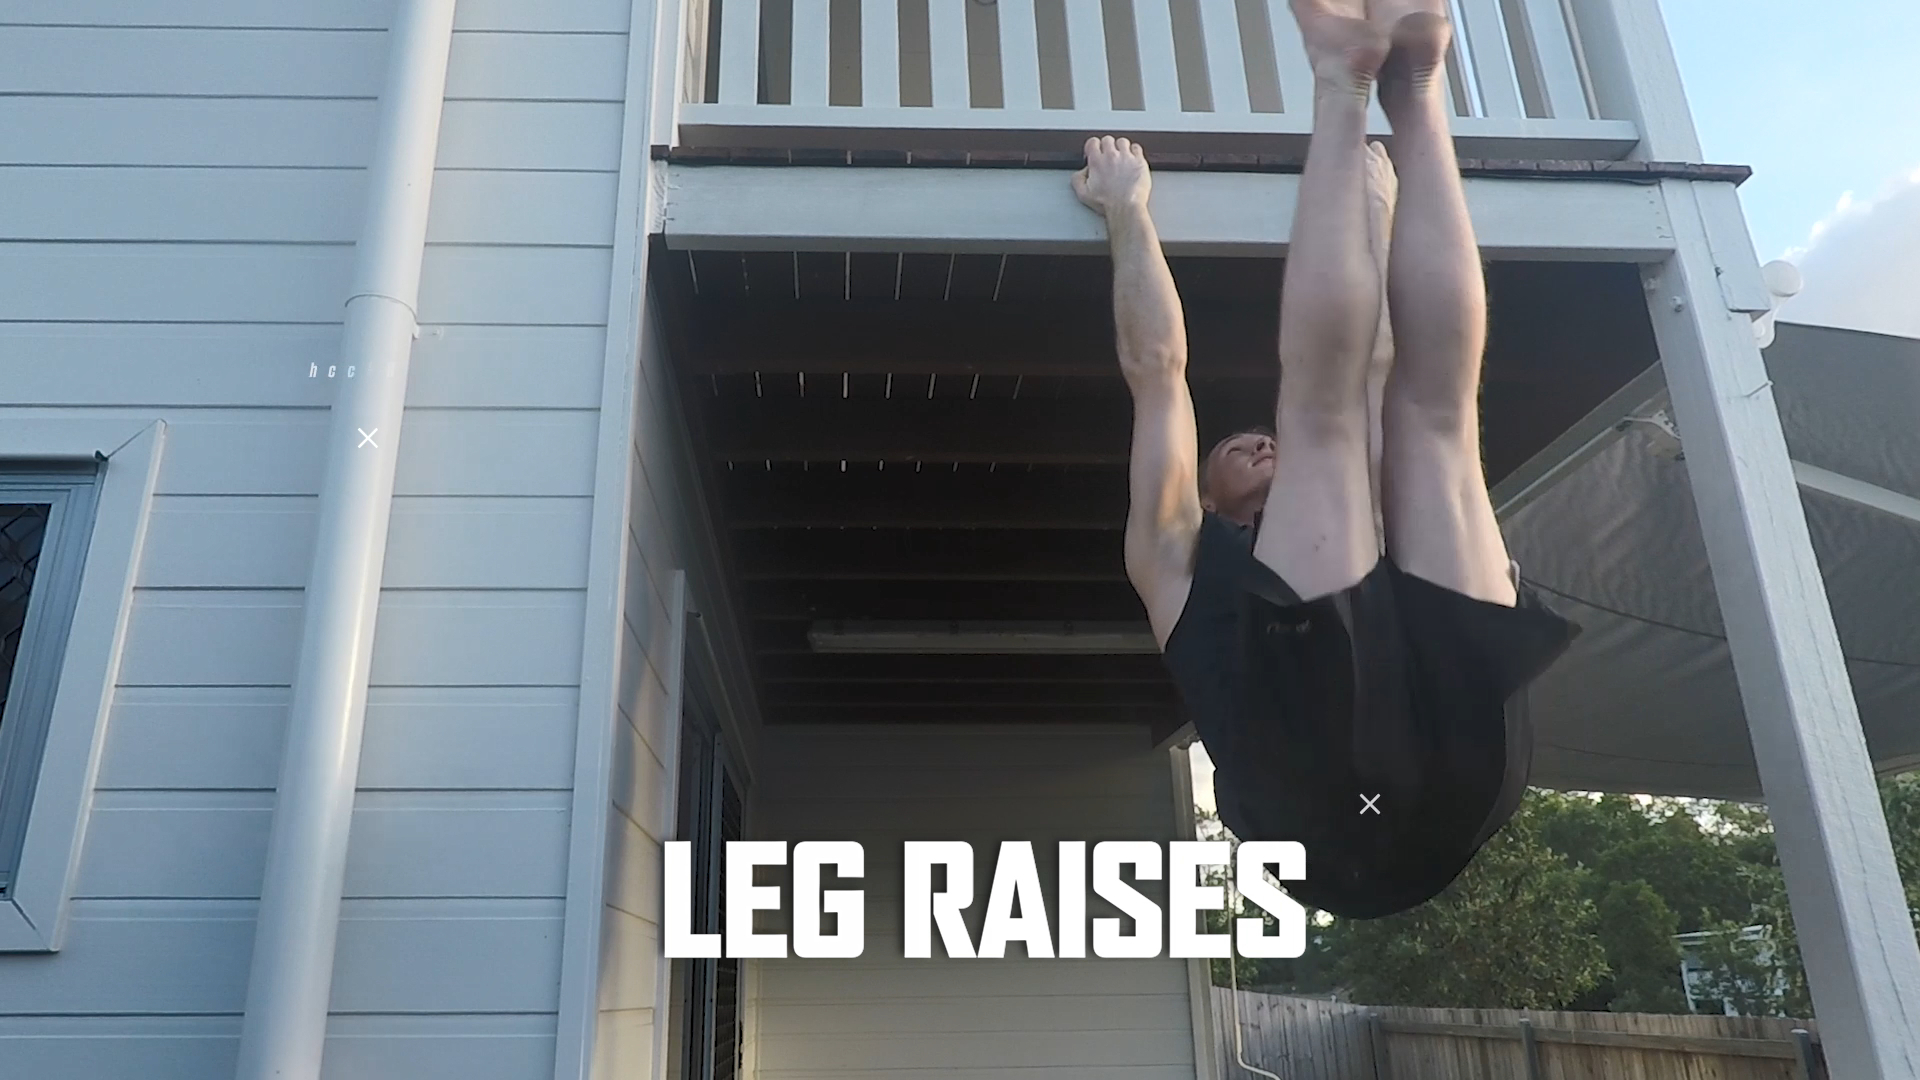 Robert Patterson's Backyard Workout